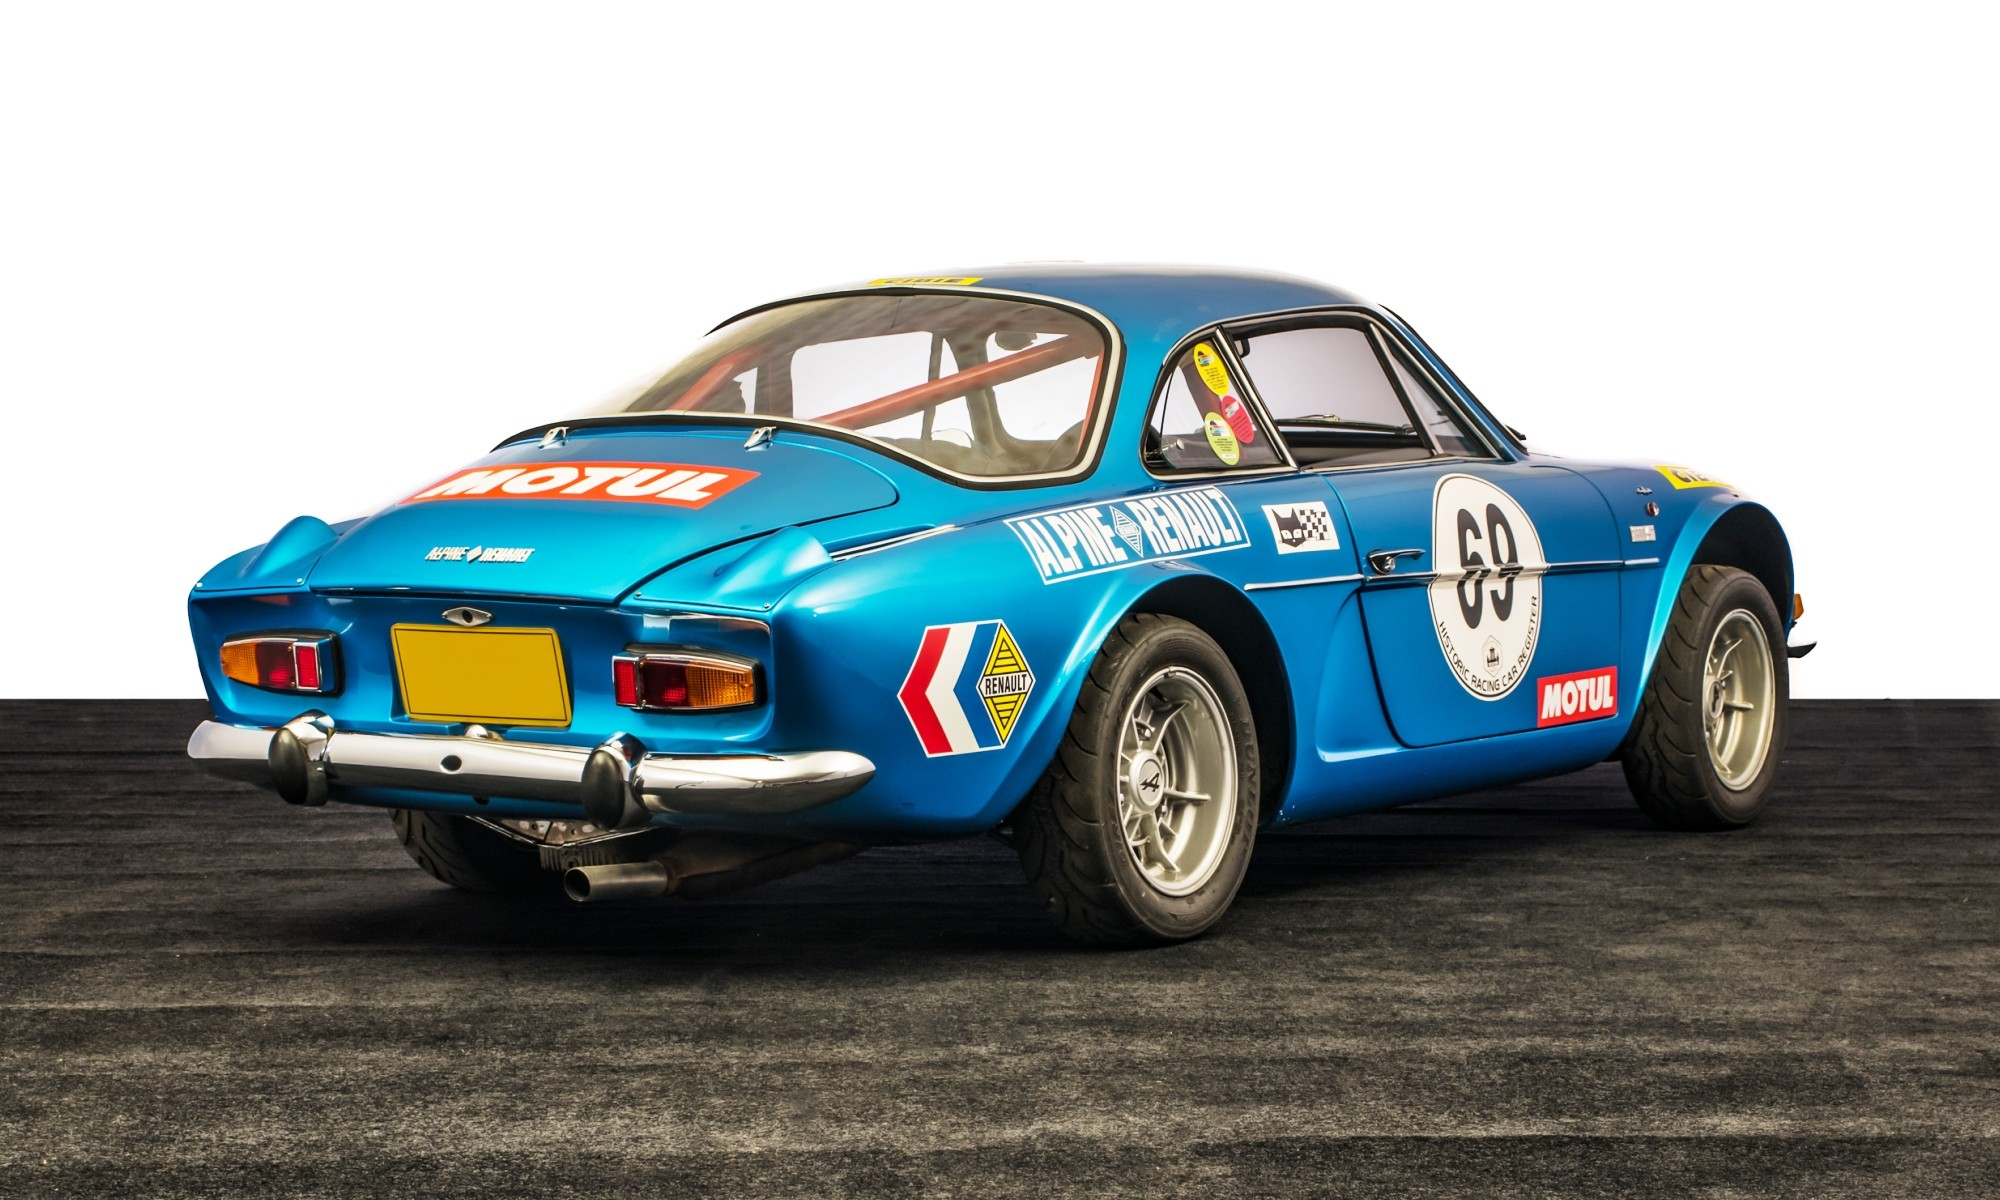 Renault Alpine A110 1600 S forms part of the classic car auction